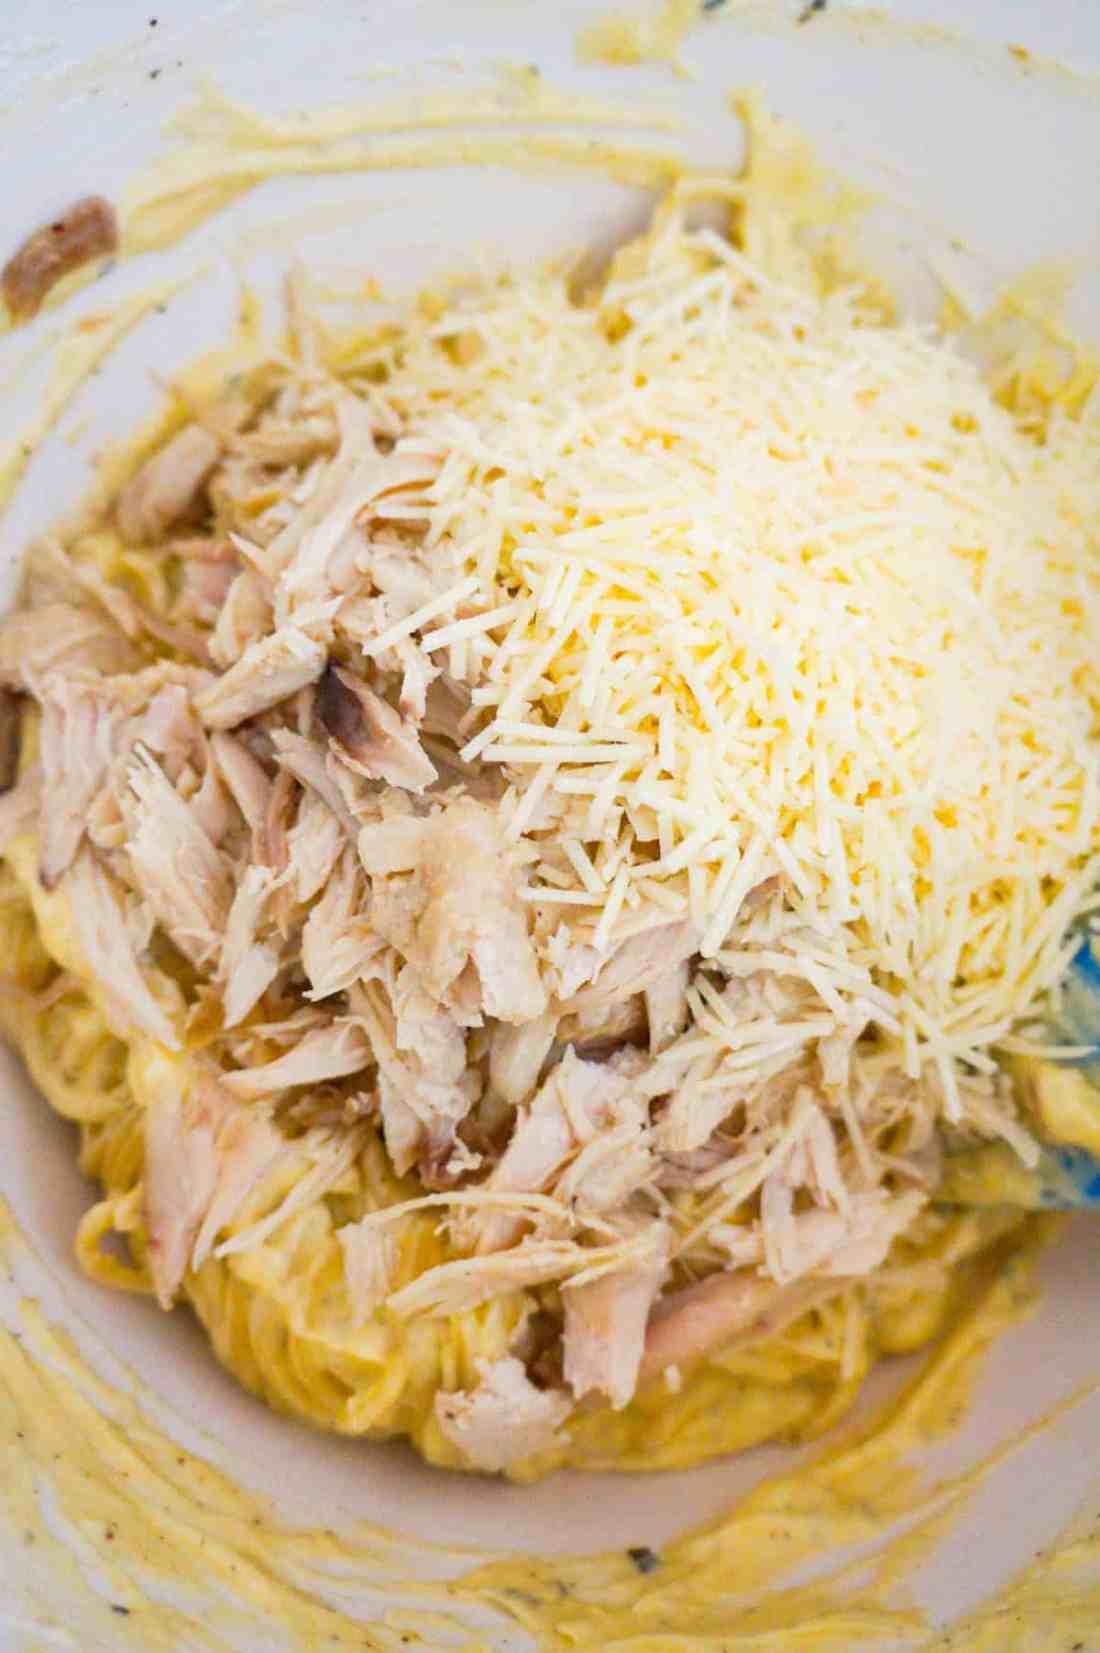 shredded Parmesan cheese and shredded turkey on top of creamy spaghetti in a mixing bowl